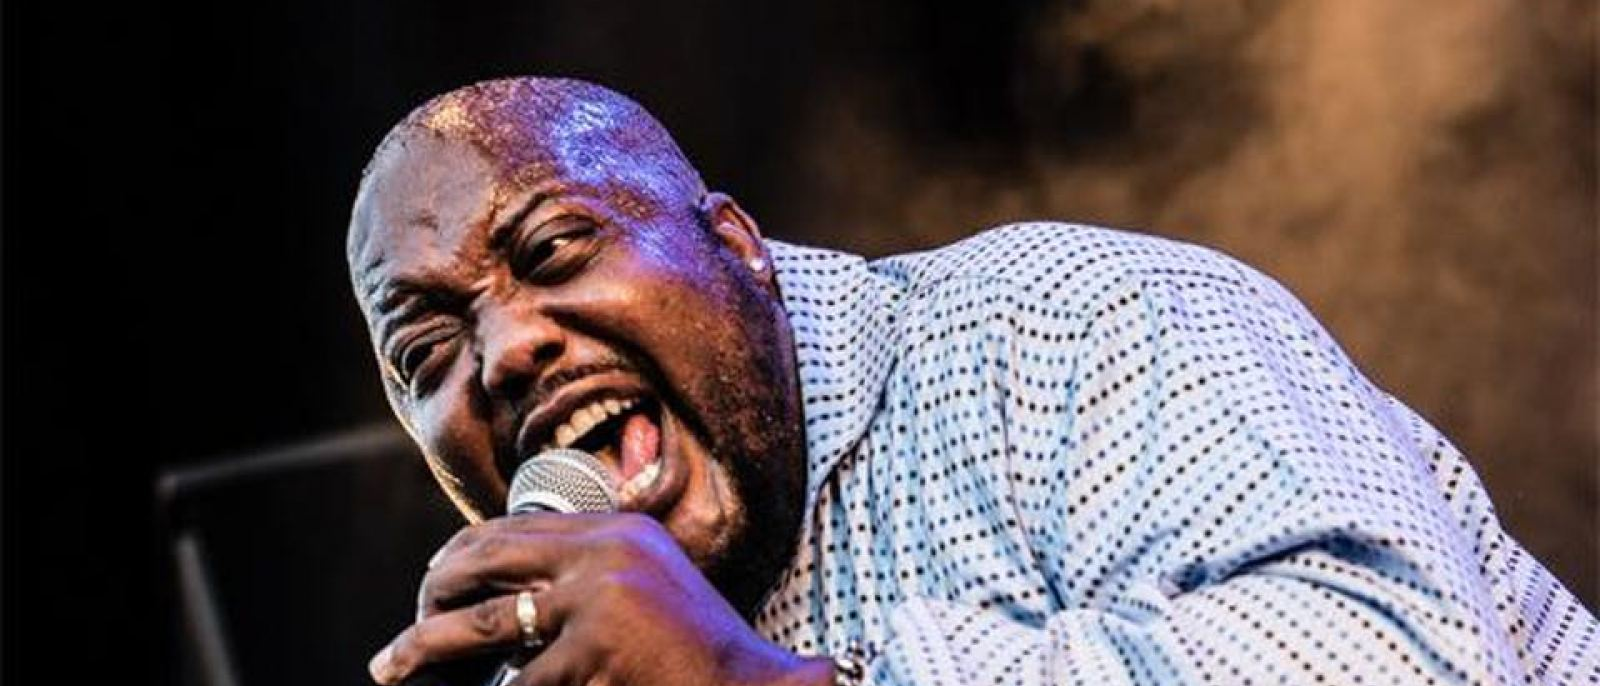 Sugaray Rayford peforms at The Mint on NYE 2020